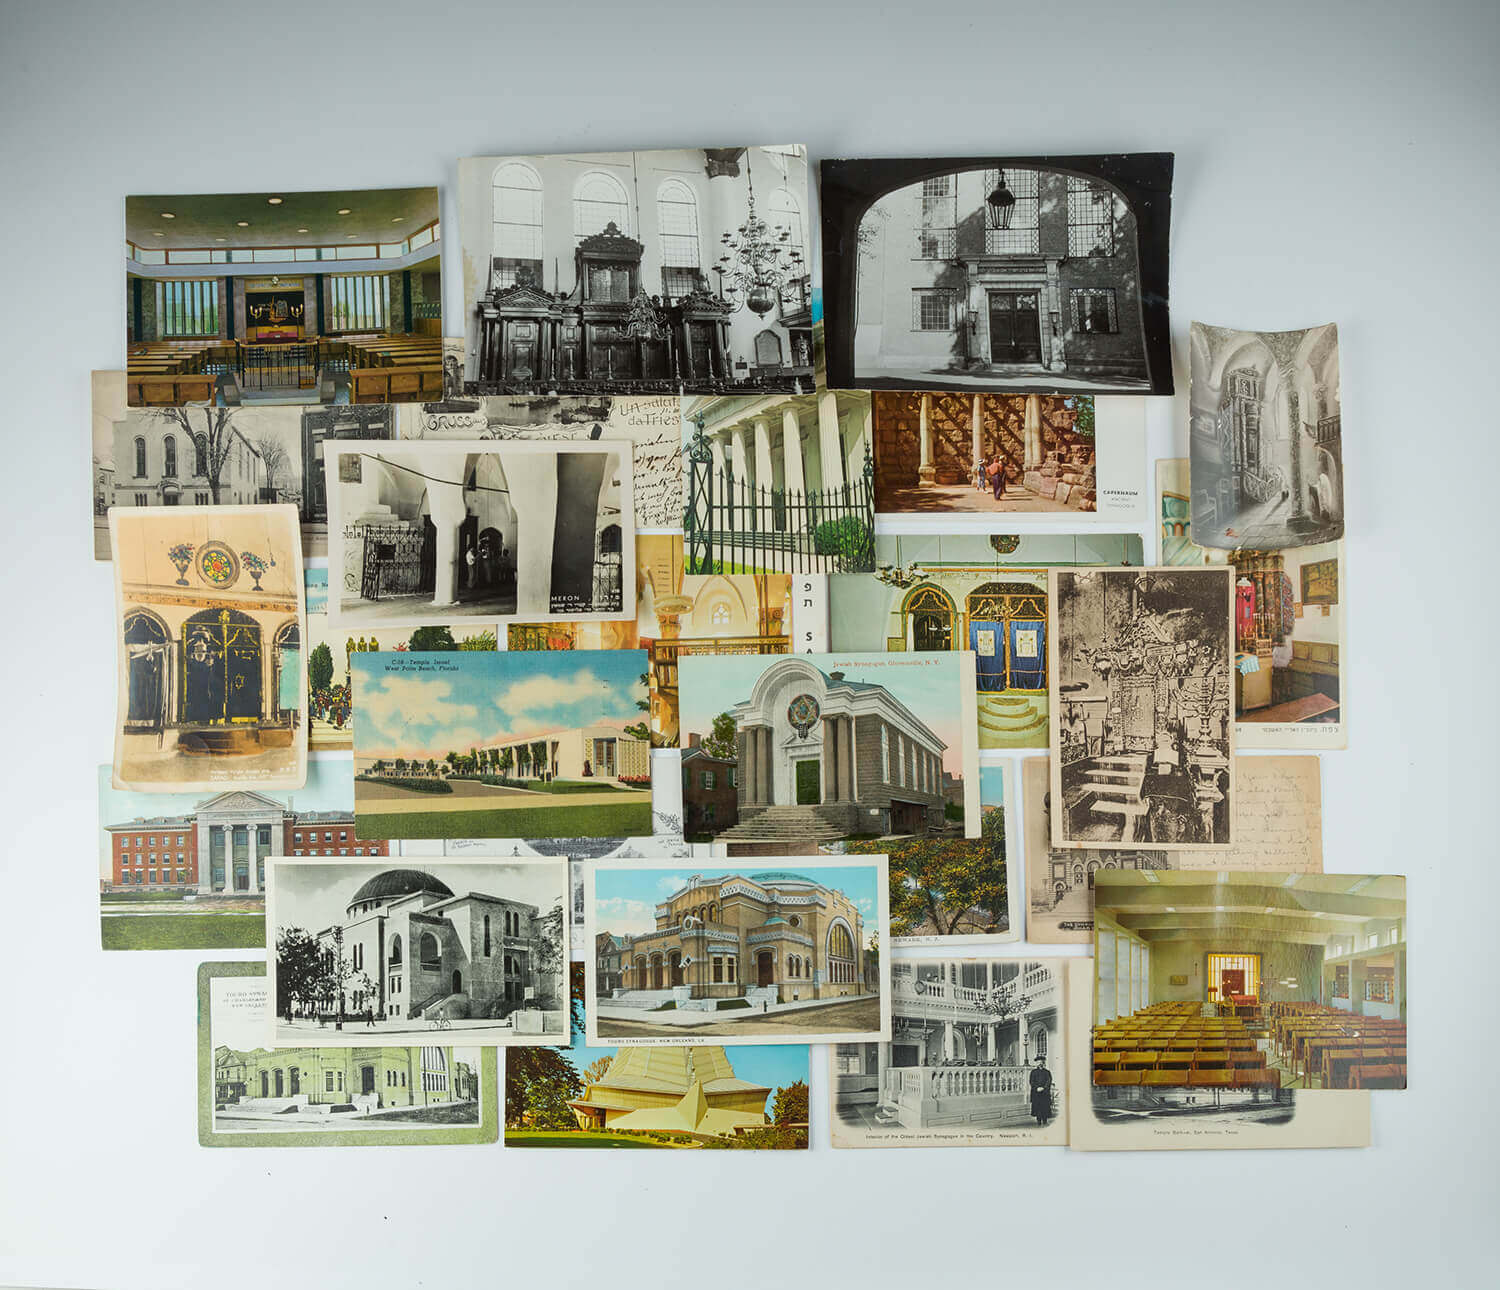 113. A LARGE COLLECTION OF SYNAGOGUE POSTCARDS